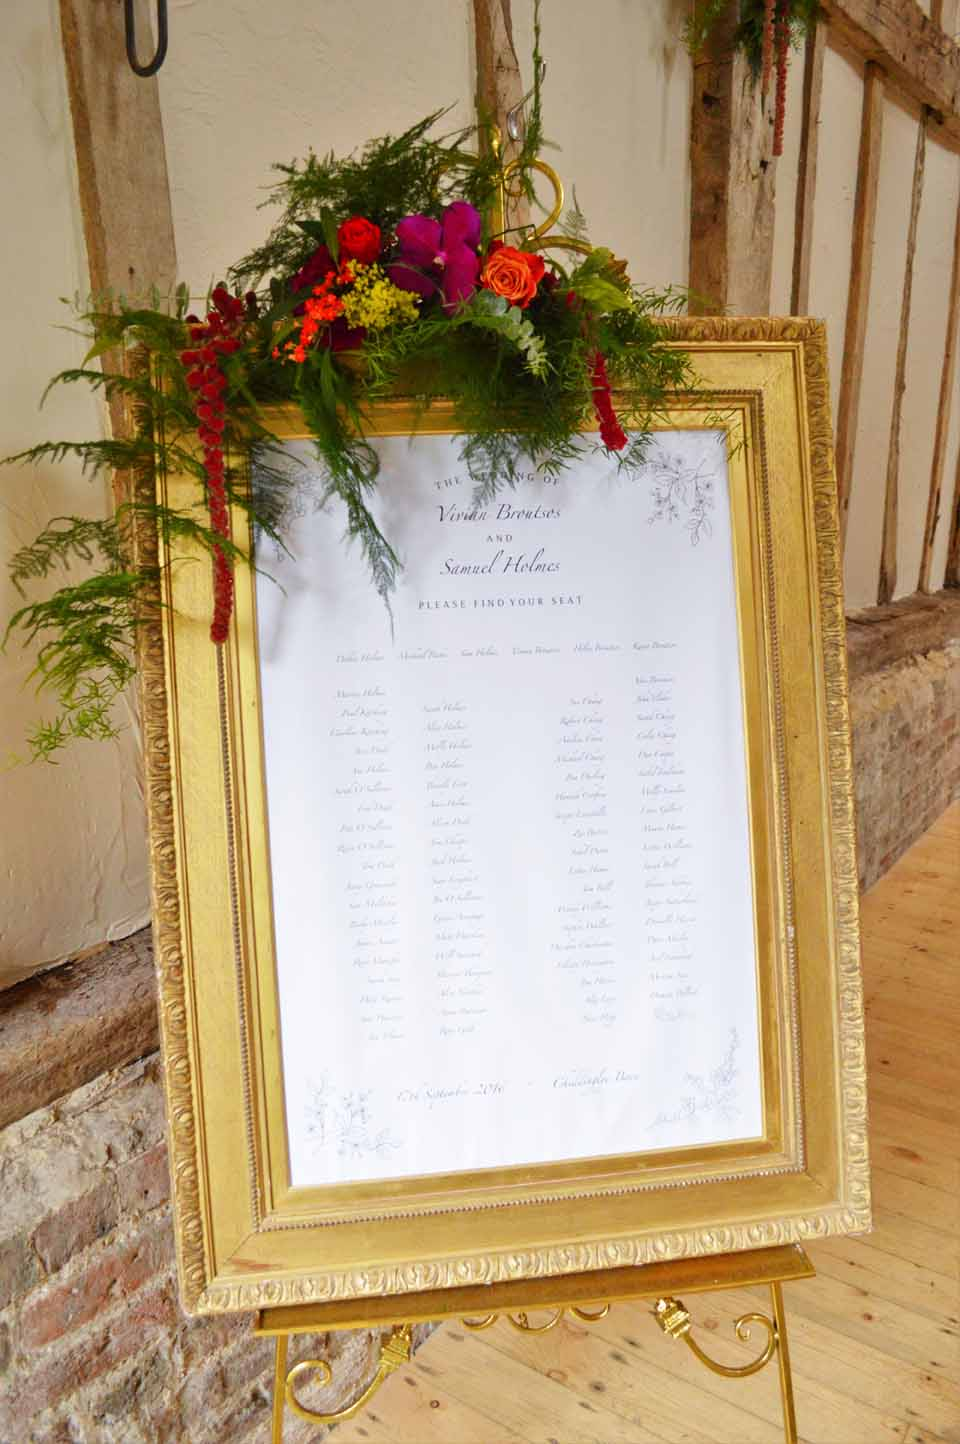 wedding table plan - Bettie Rose